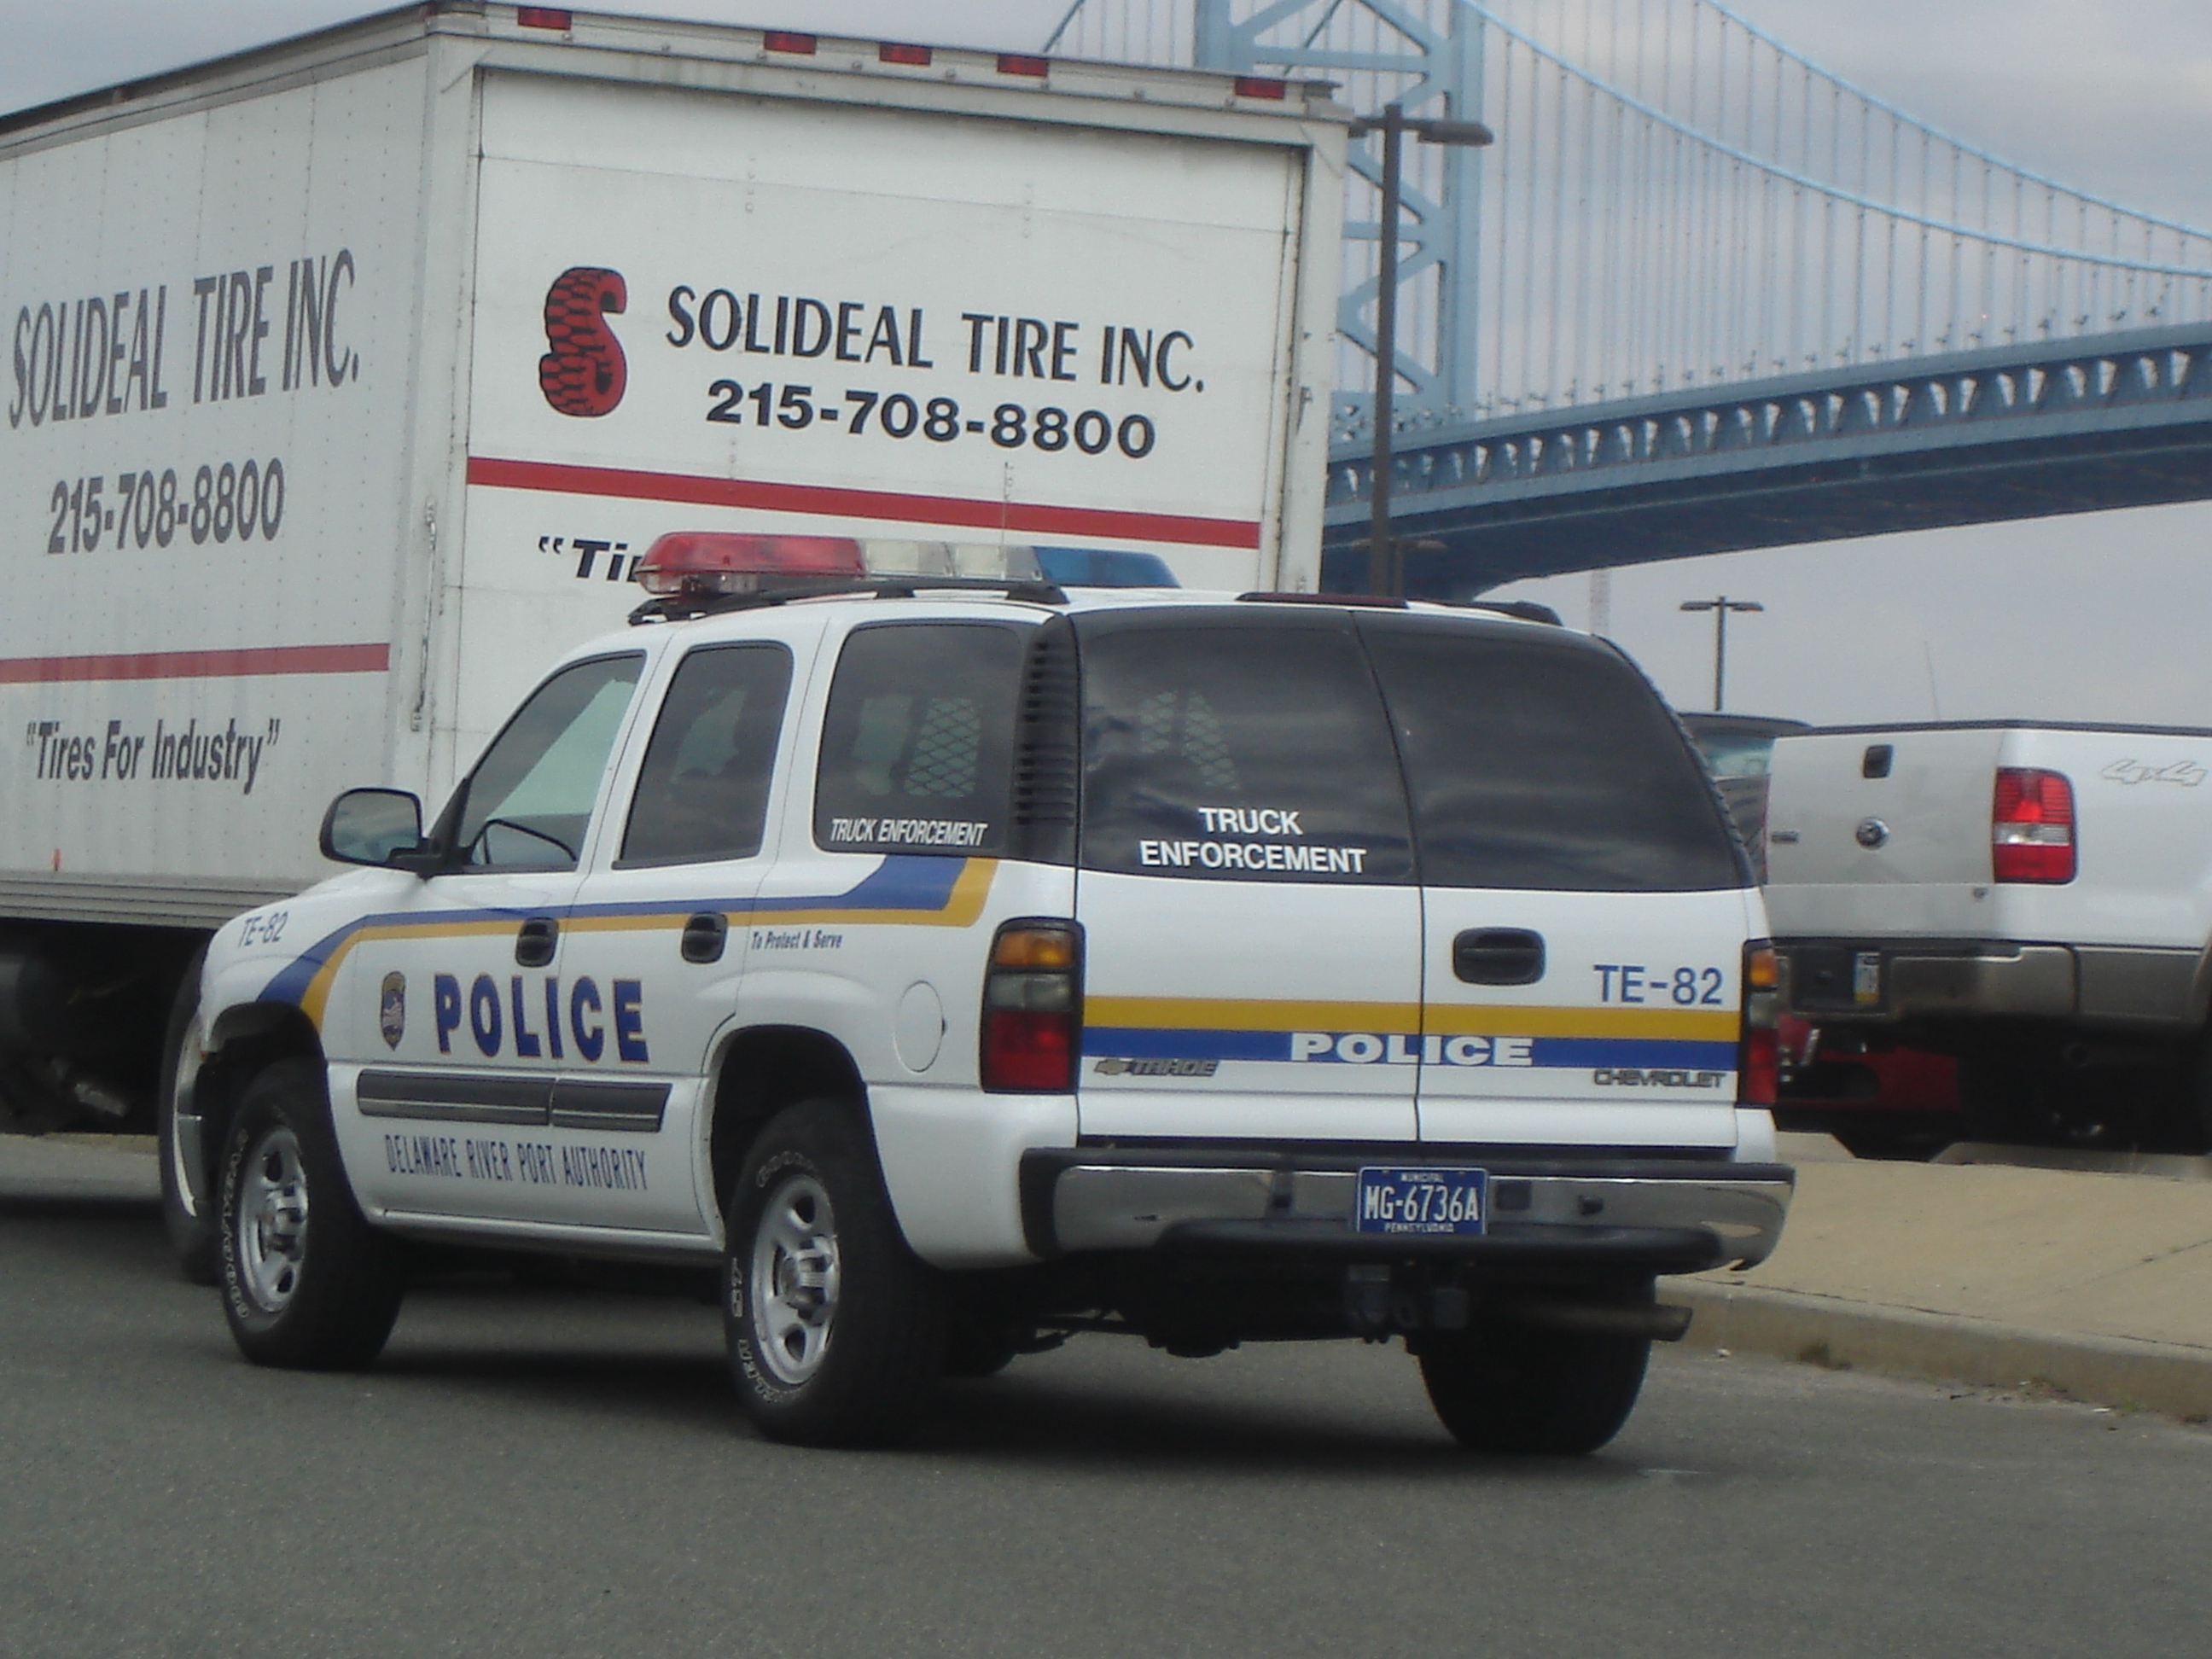 Delaware River Port Authority Police File:delaware River Port